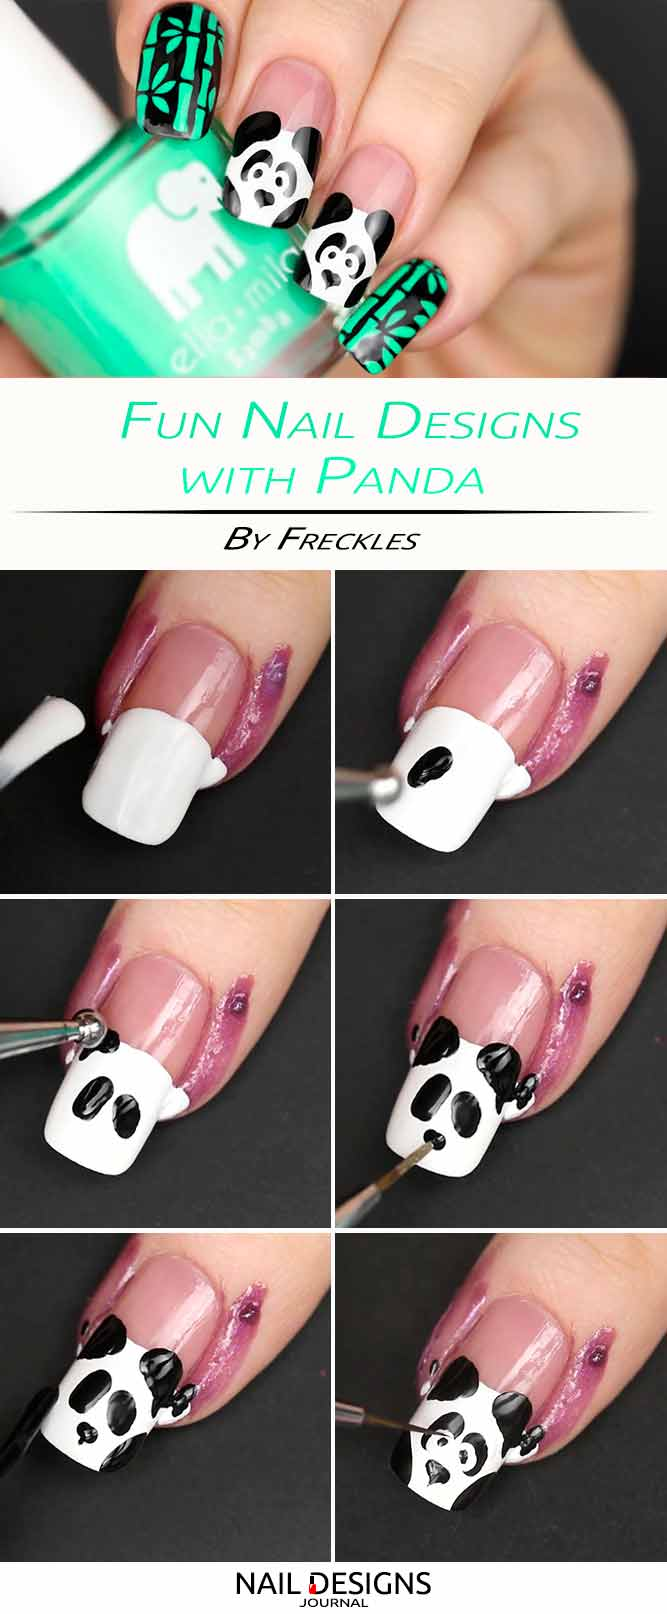 - Fun Nail Designs At Home NailDesignsJournal.com